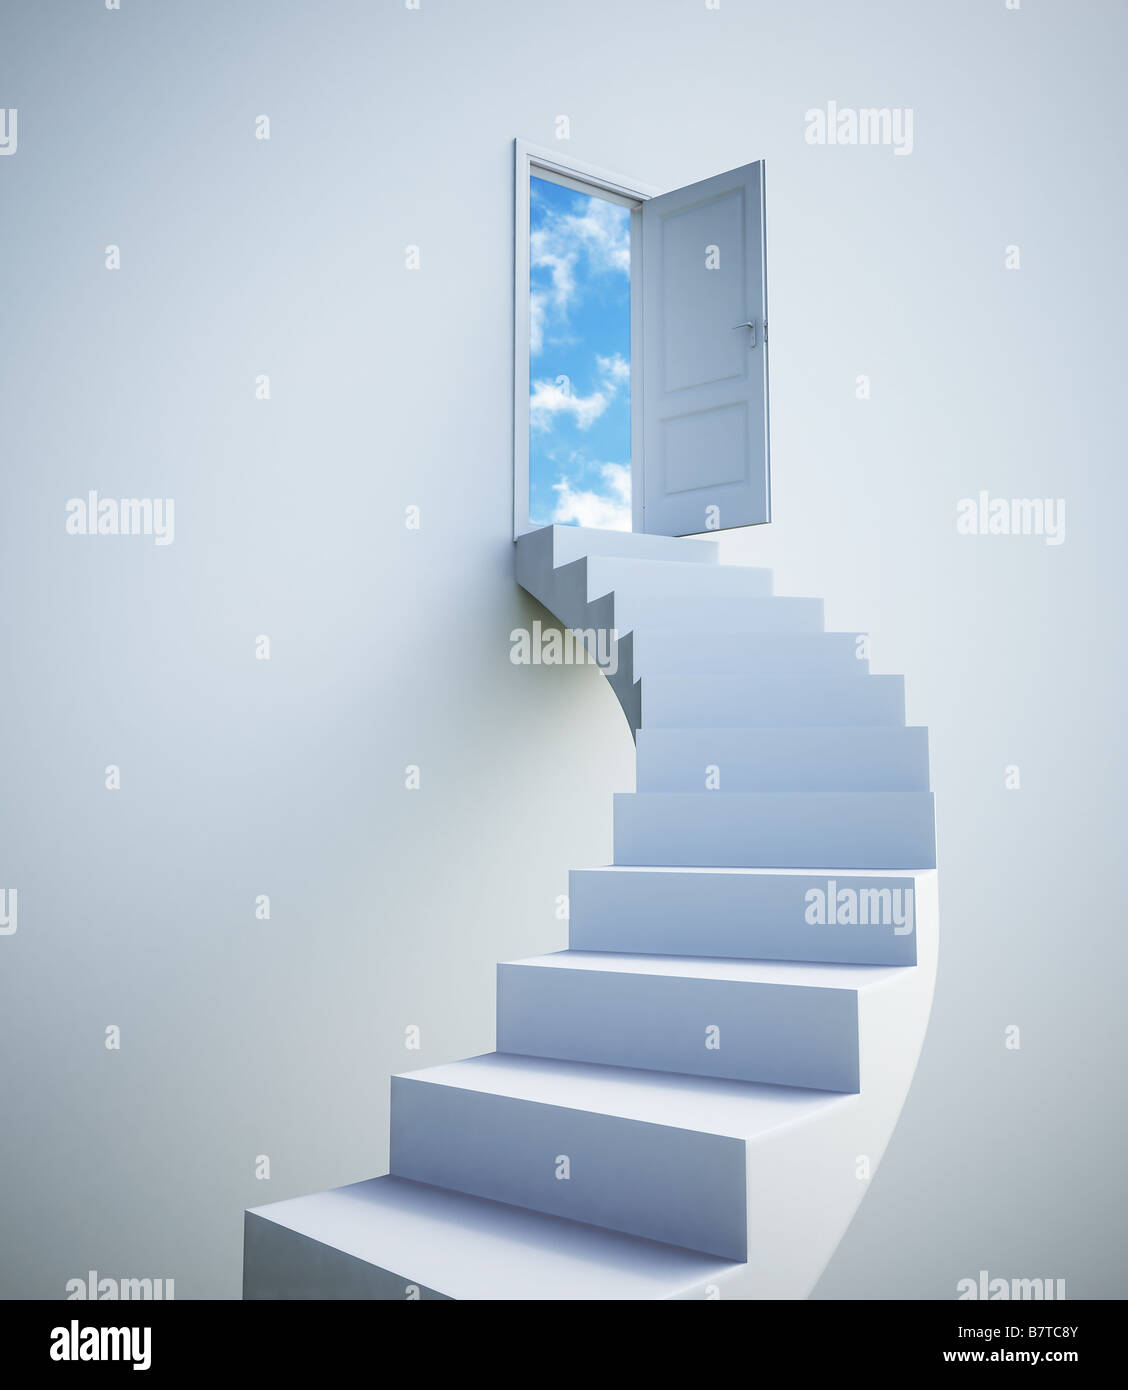 Stairway to the sky - Stock Image